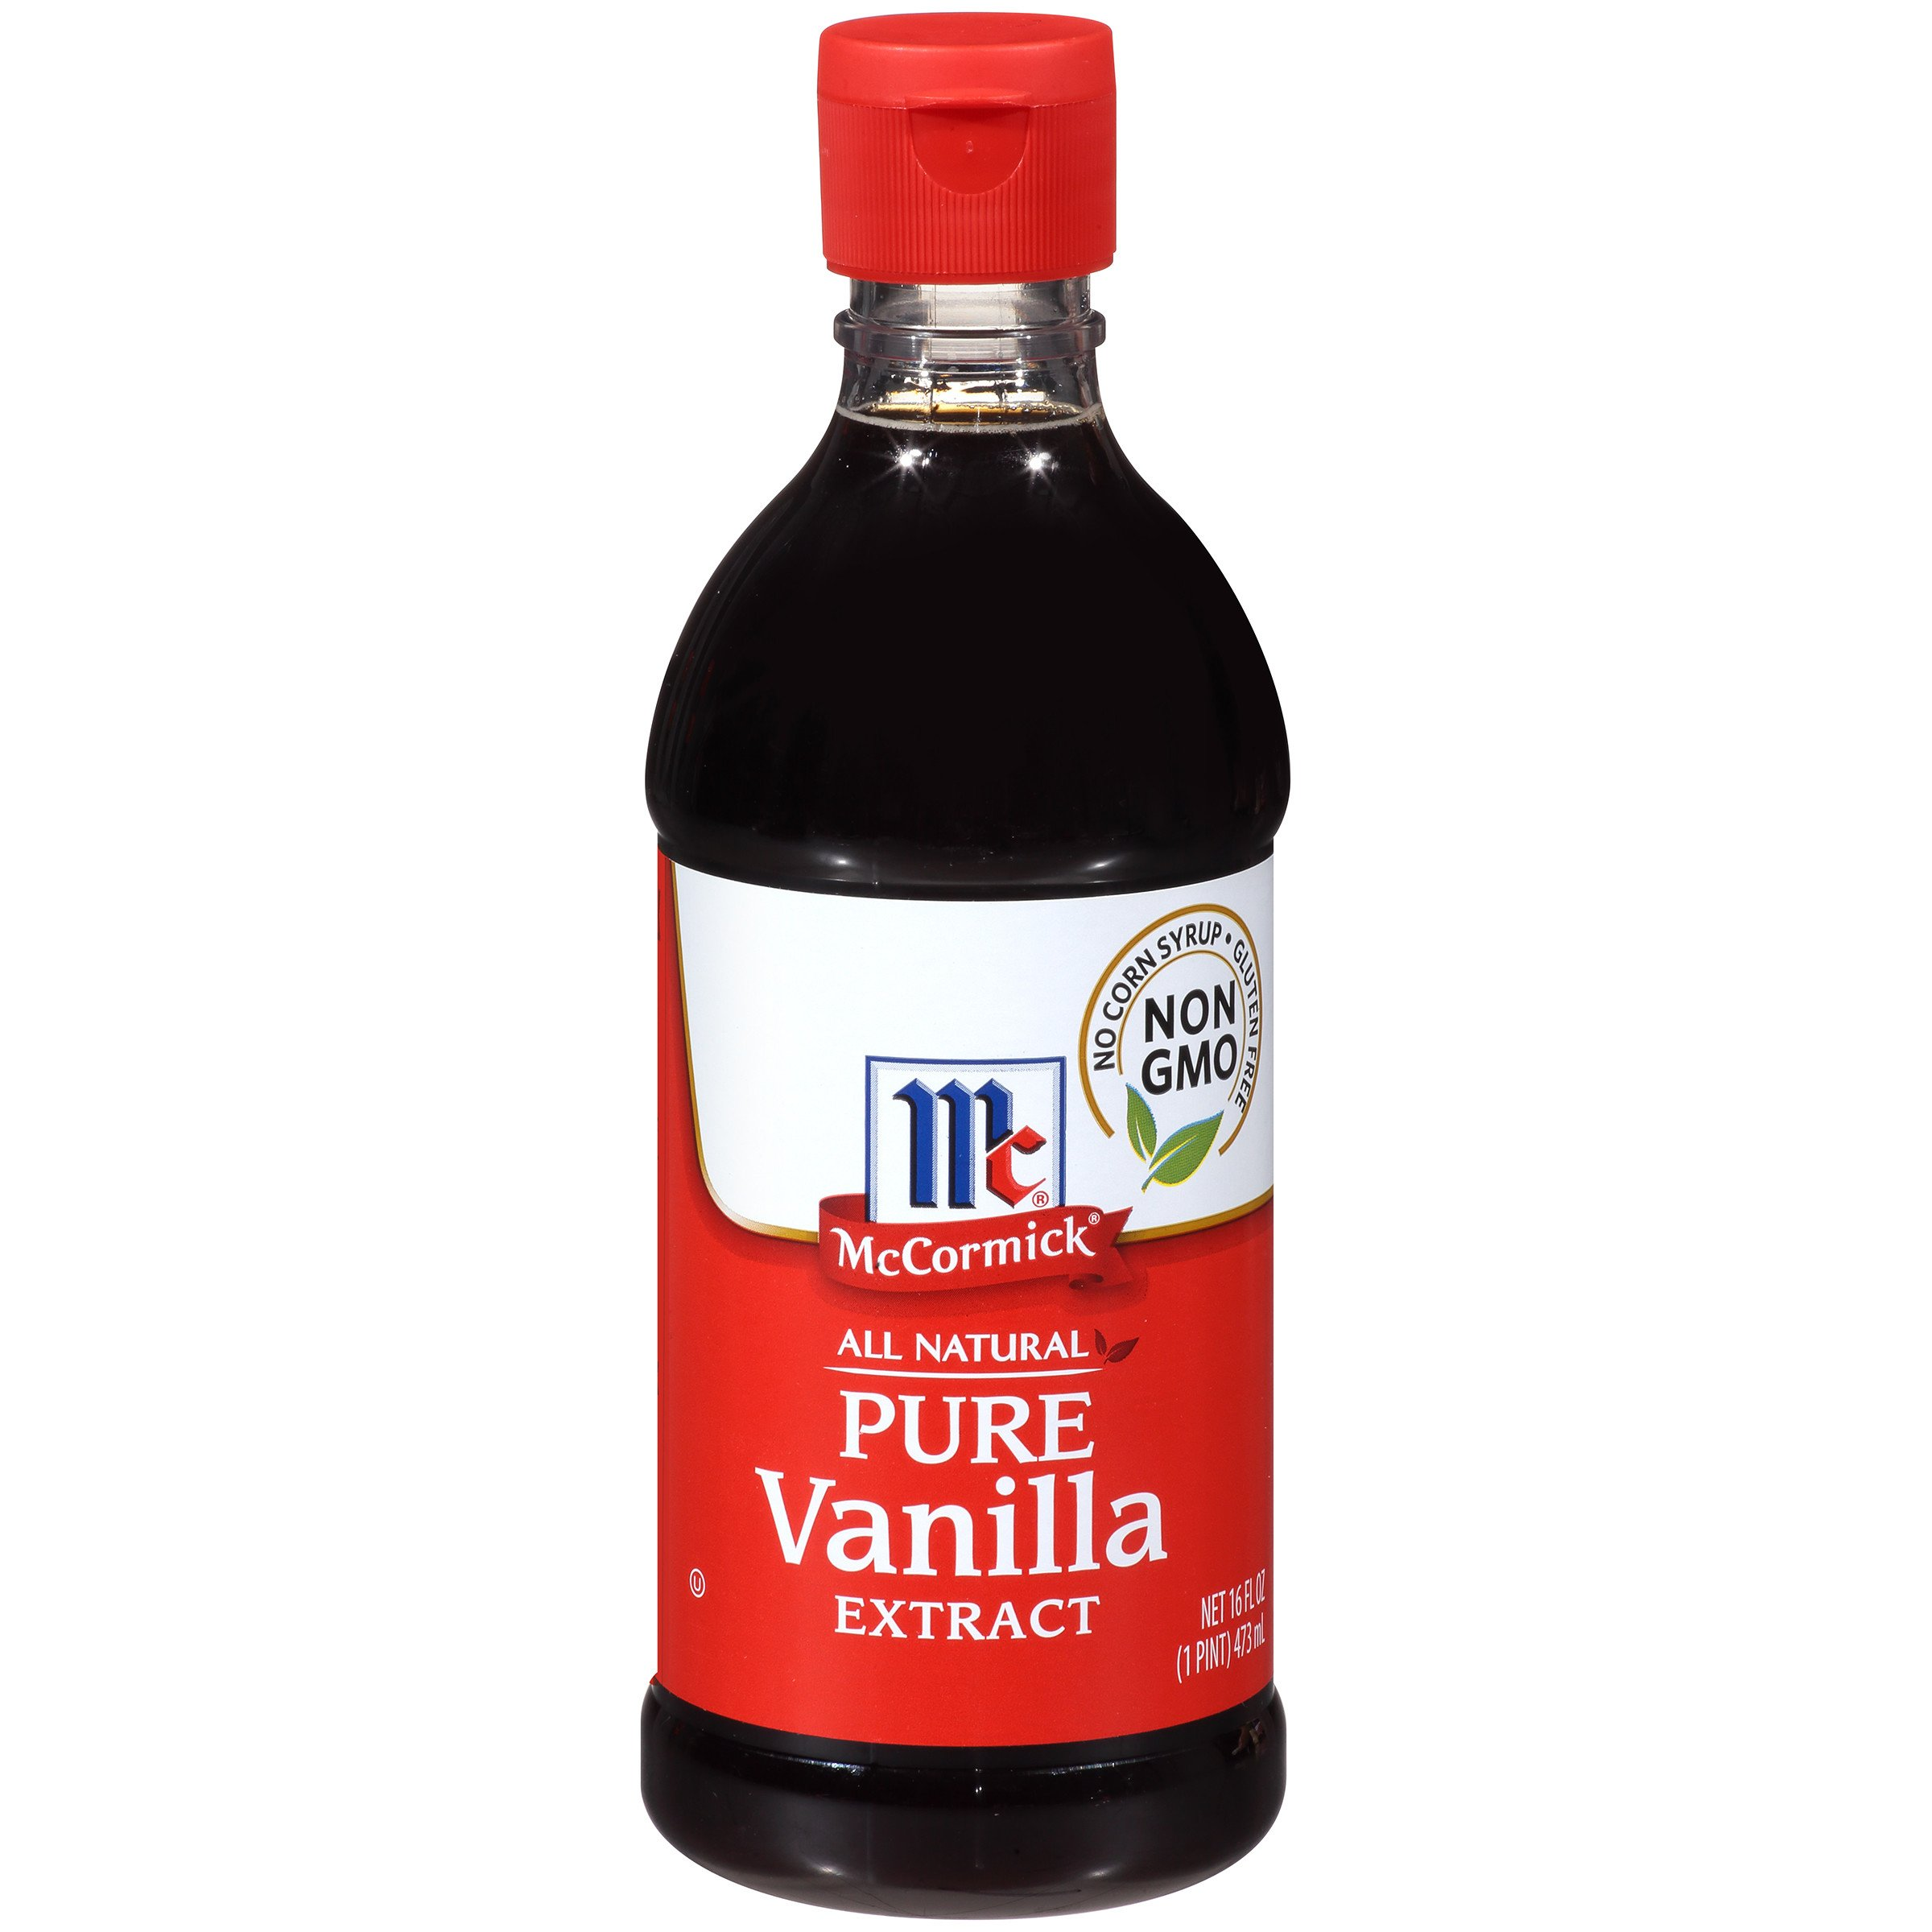 McCormick All Natural Pure Vanilla Extract, Gluten-Free Vanilla, 16 fl oz